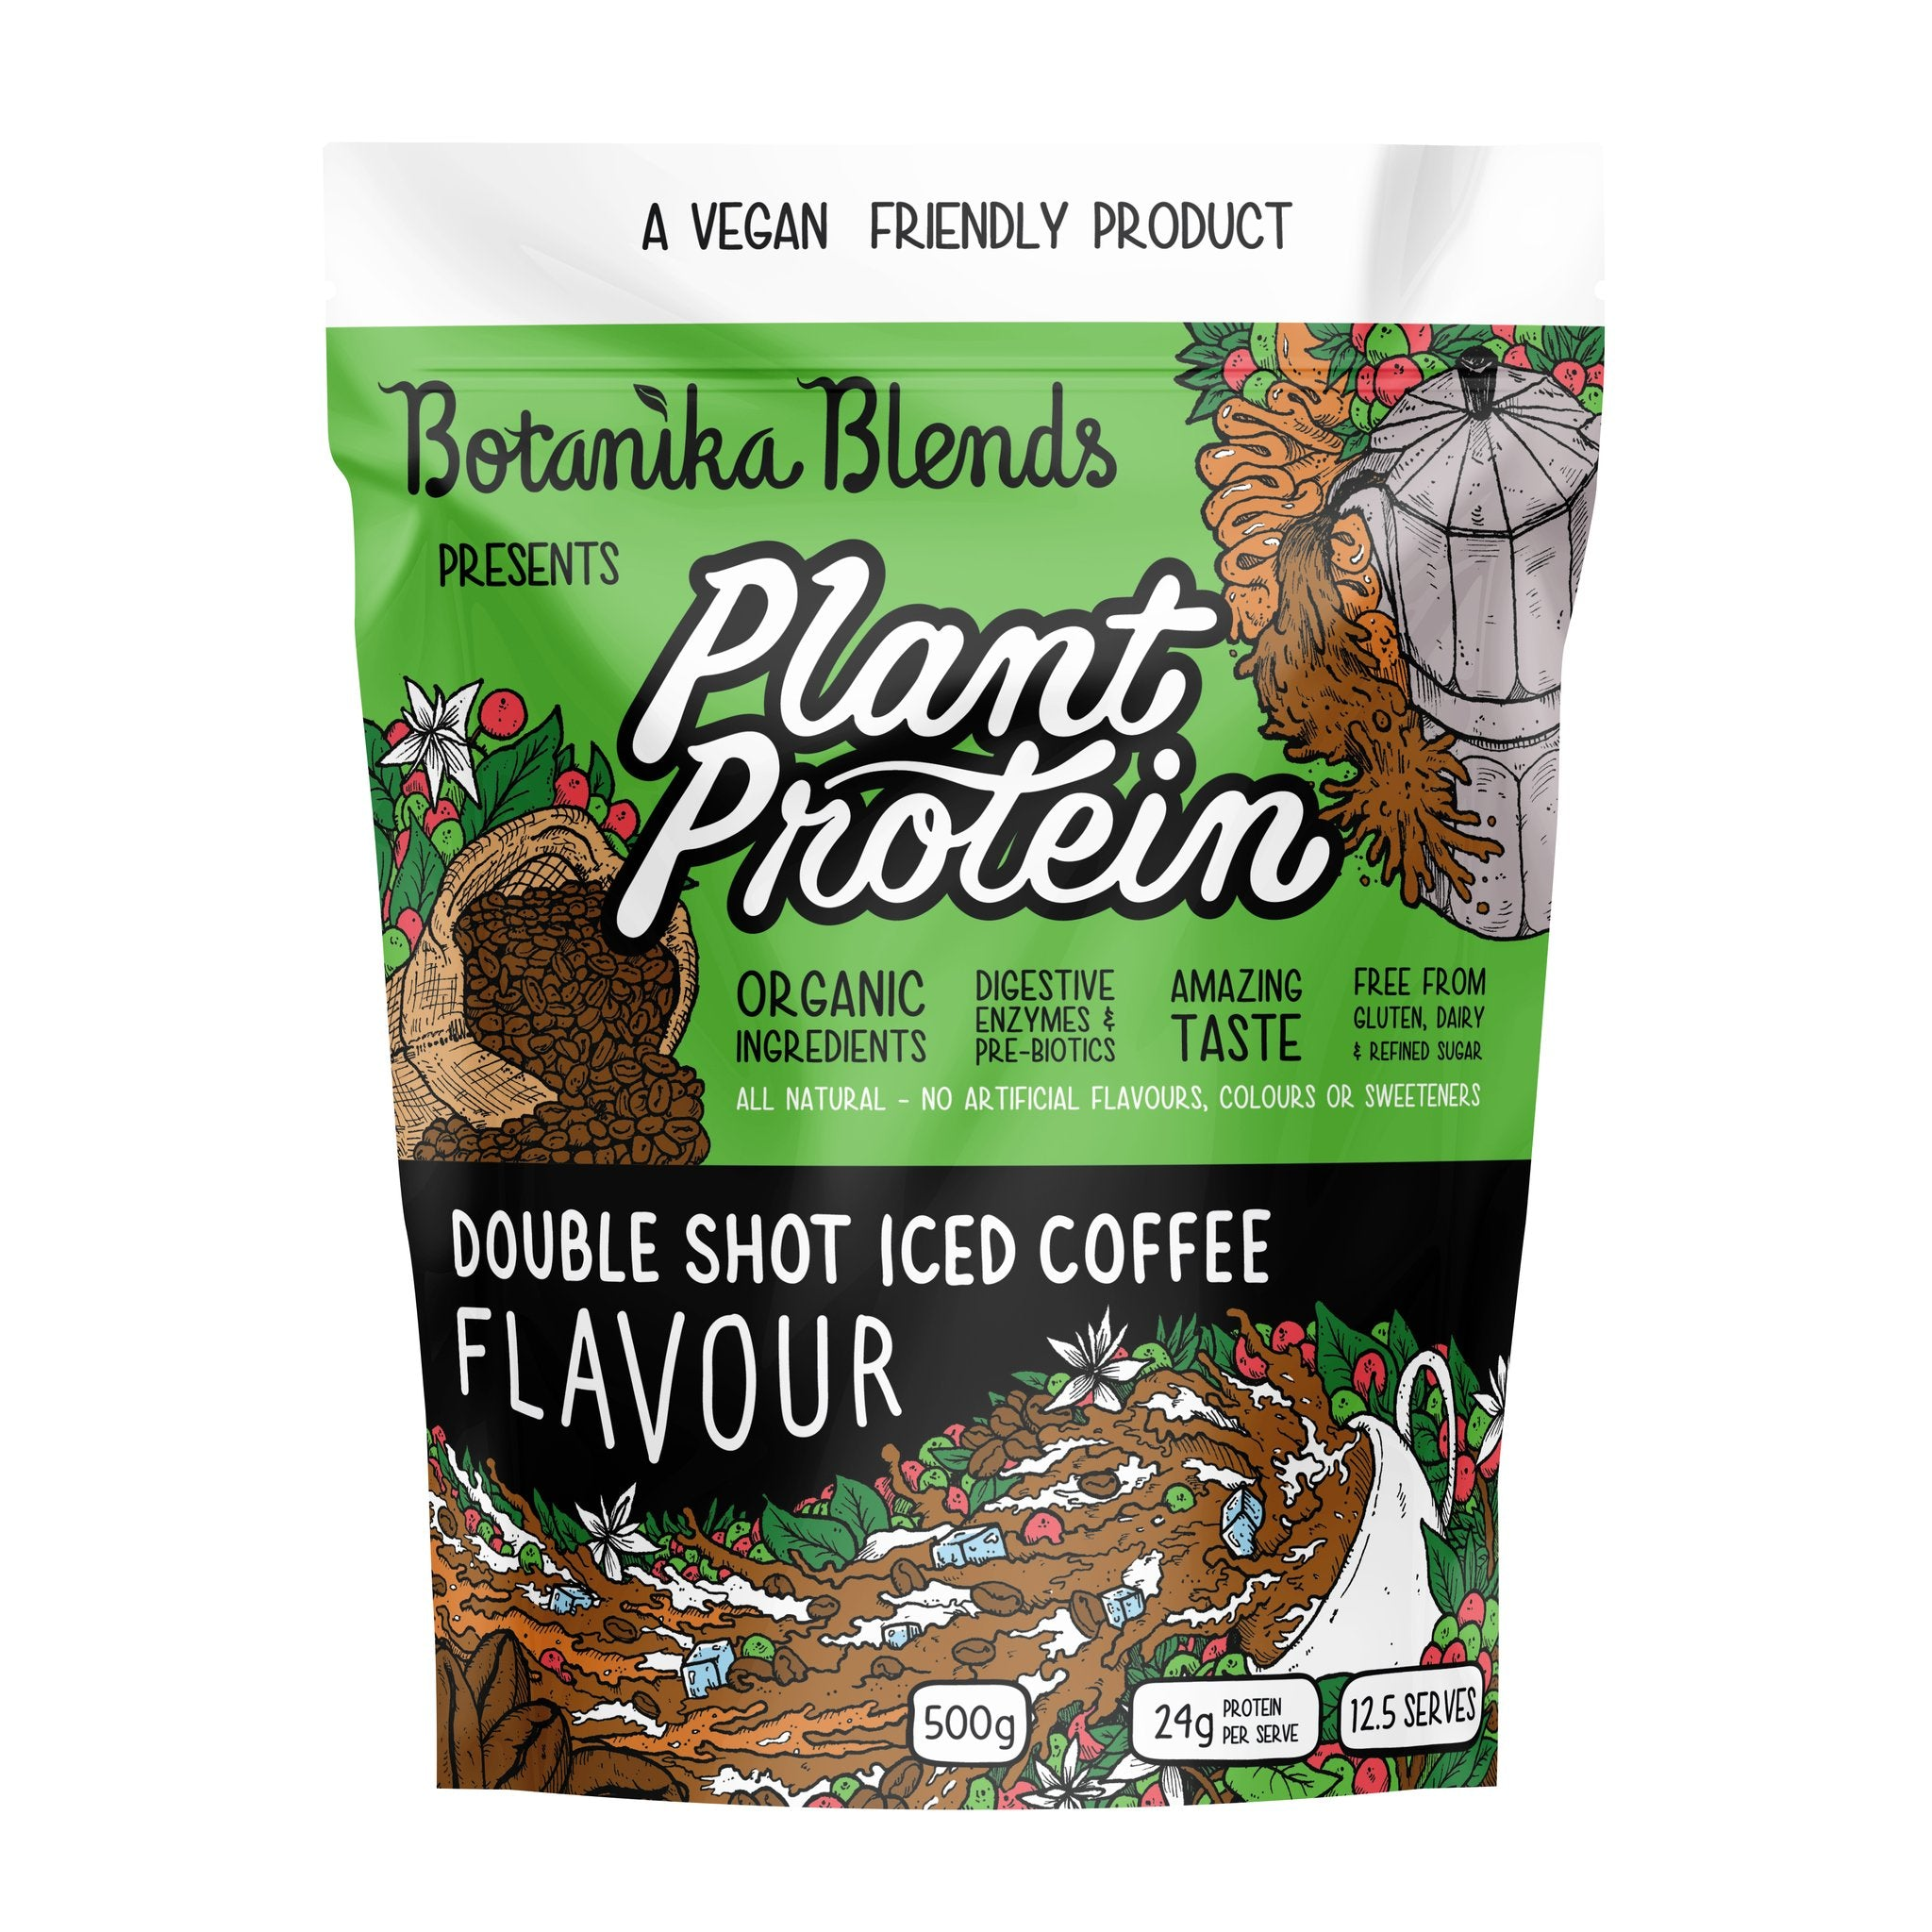 Botanika Blends Vegan Protein Powder - Double Shot Iced Coffee Flavour 500g